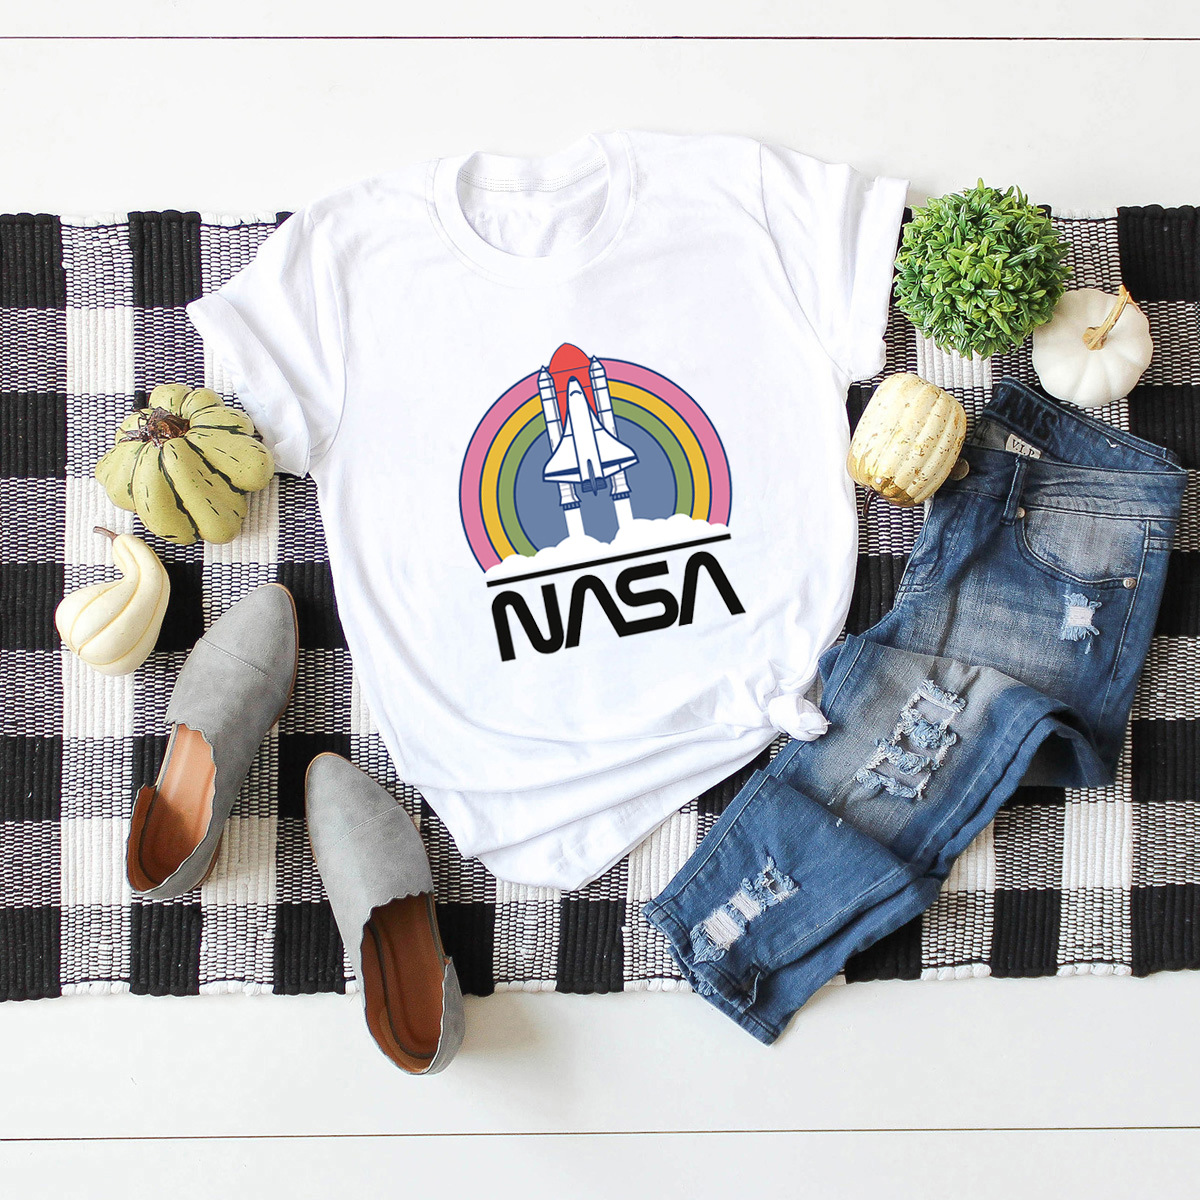 space rainbow printed cotton short-sleeved t-shirt women NSSN2686